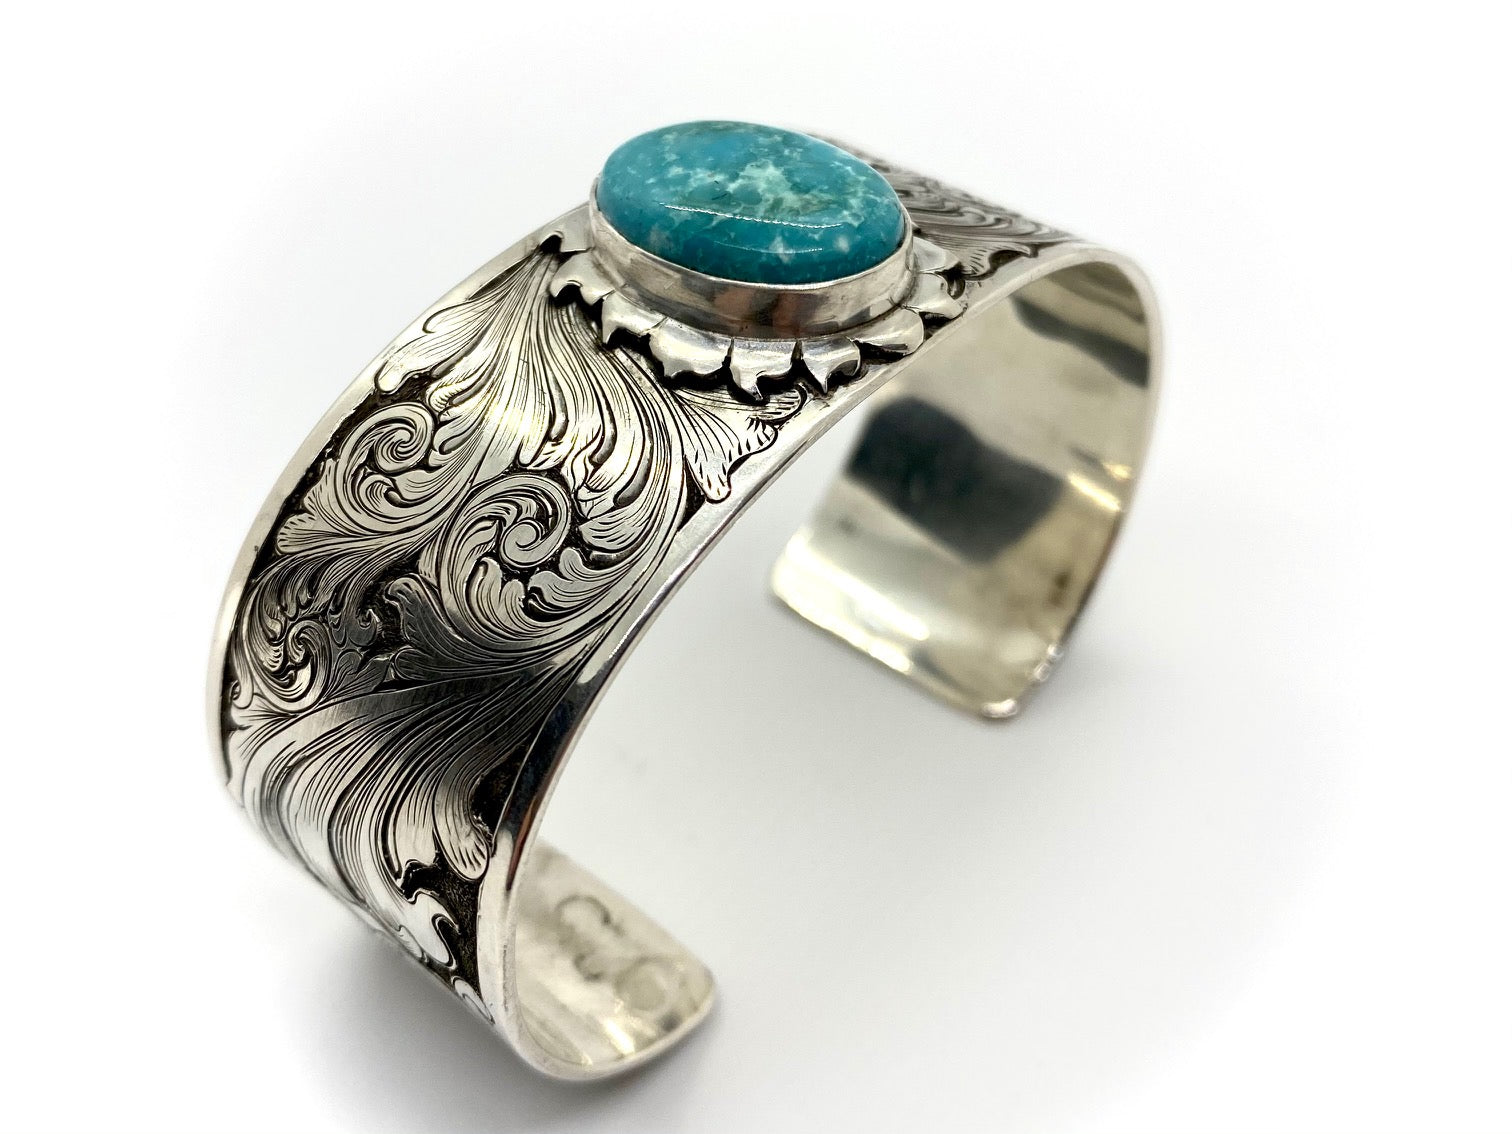 Engraved Sterling Silver Bracelet with Misty Blue turquoise stone angled view